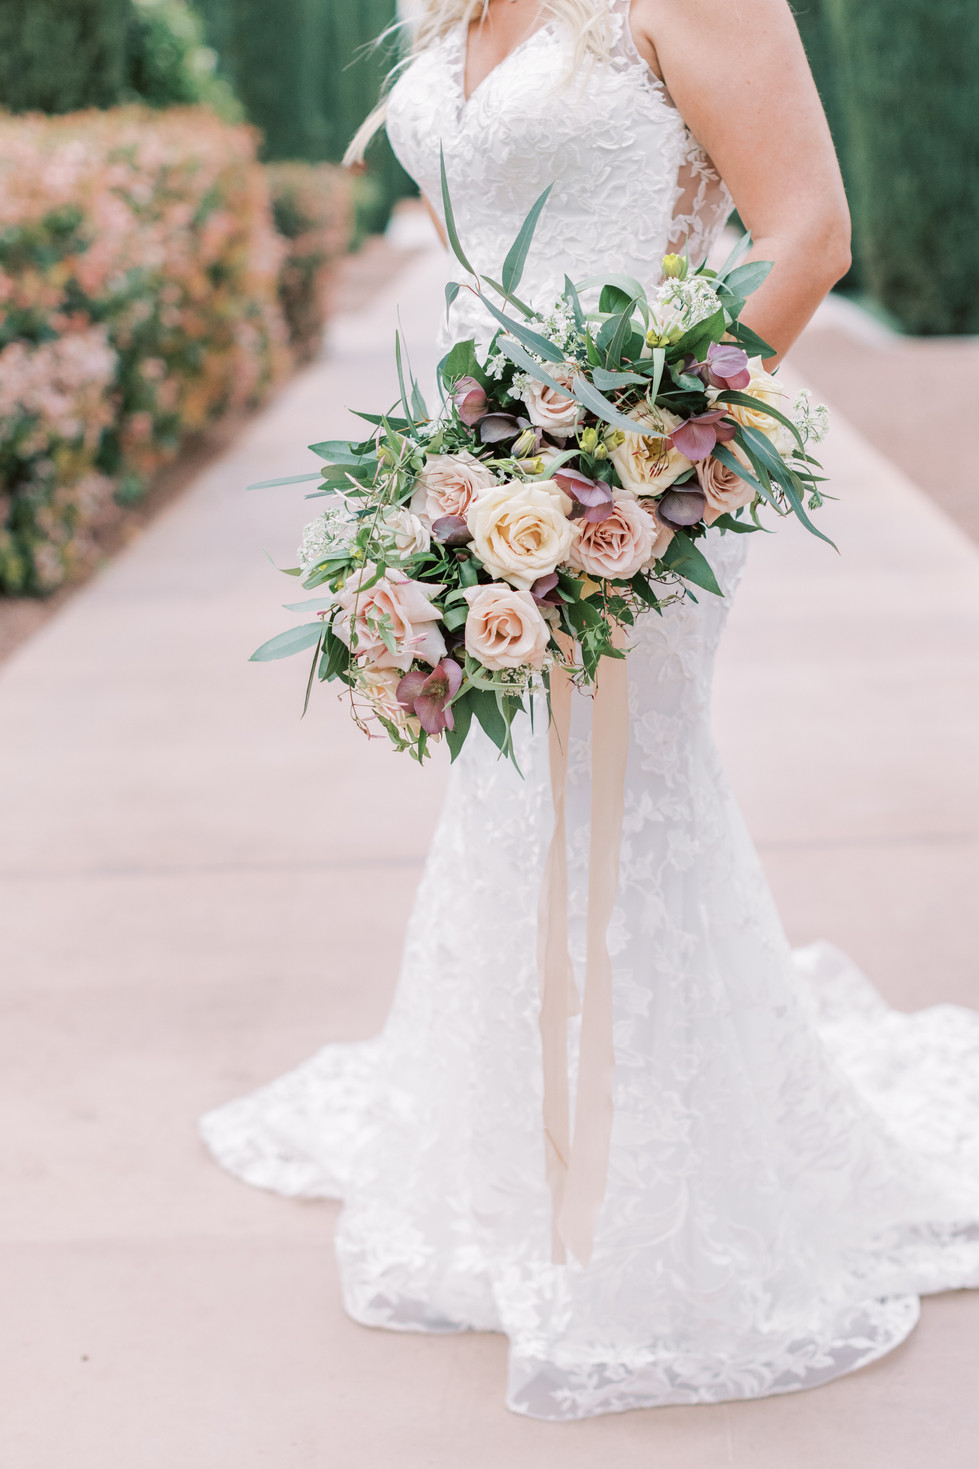 Dusty blush and ivory bridal bouquet. Photo: Lianna Marie